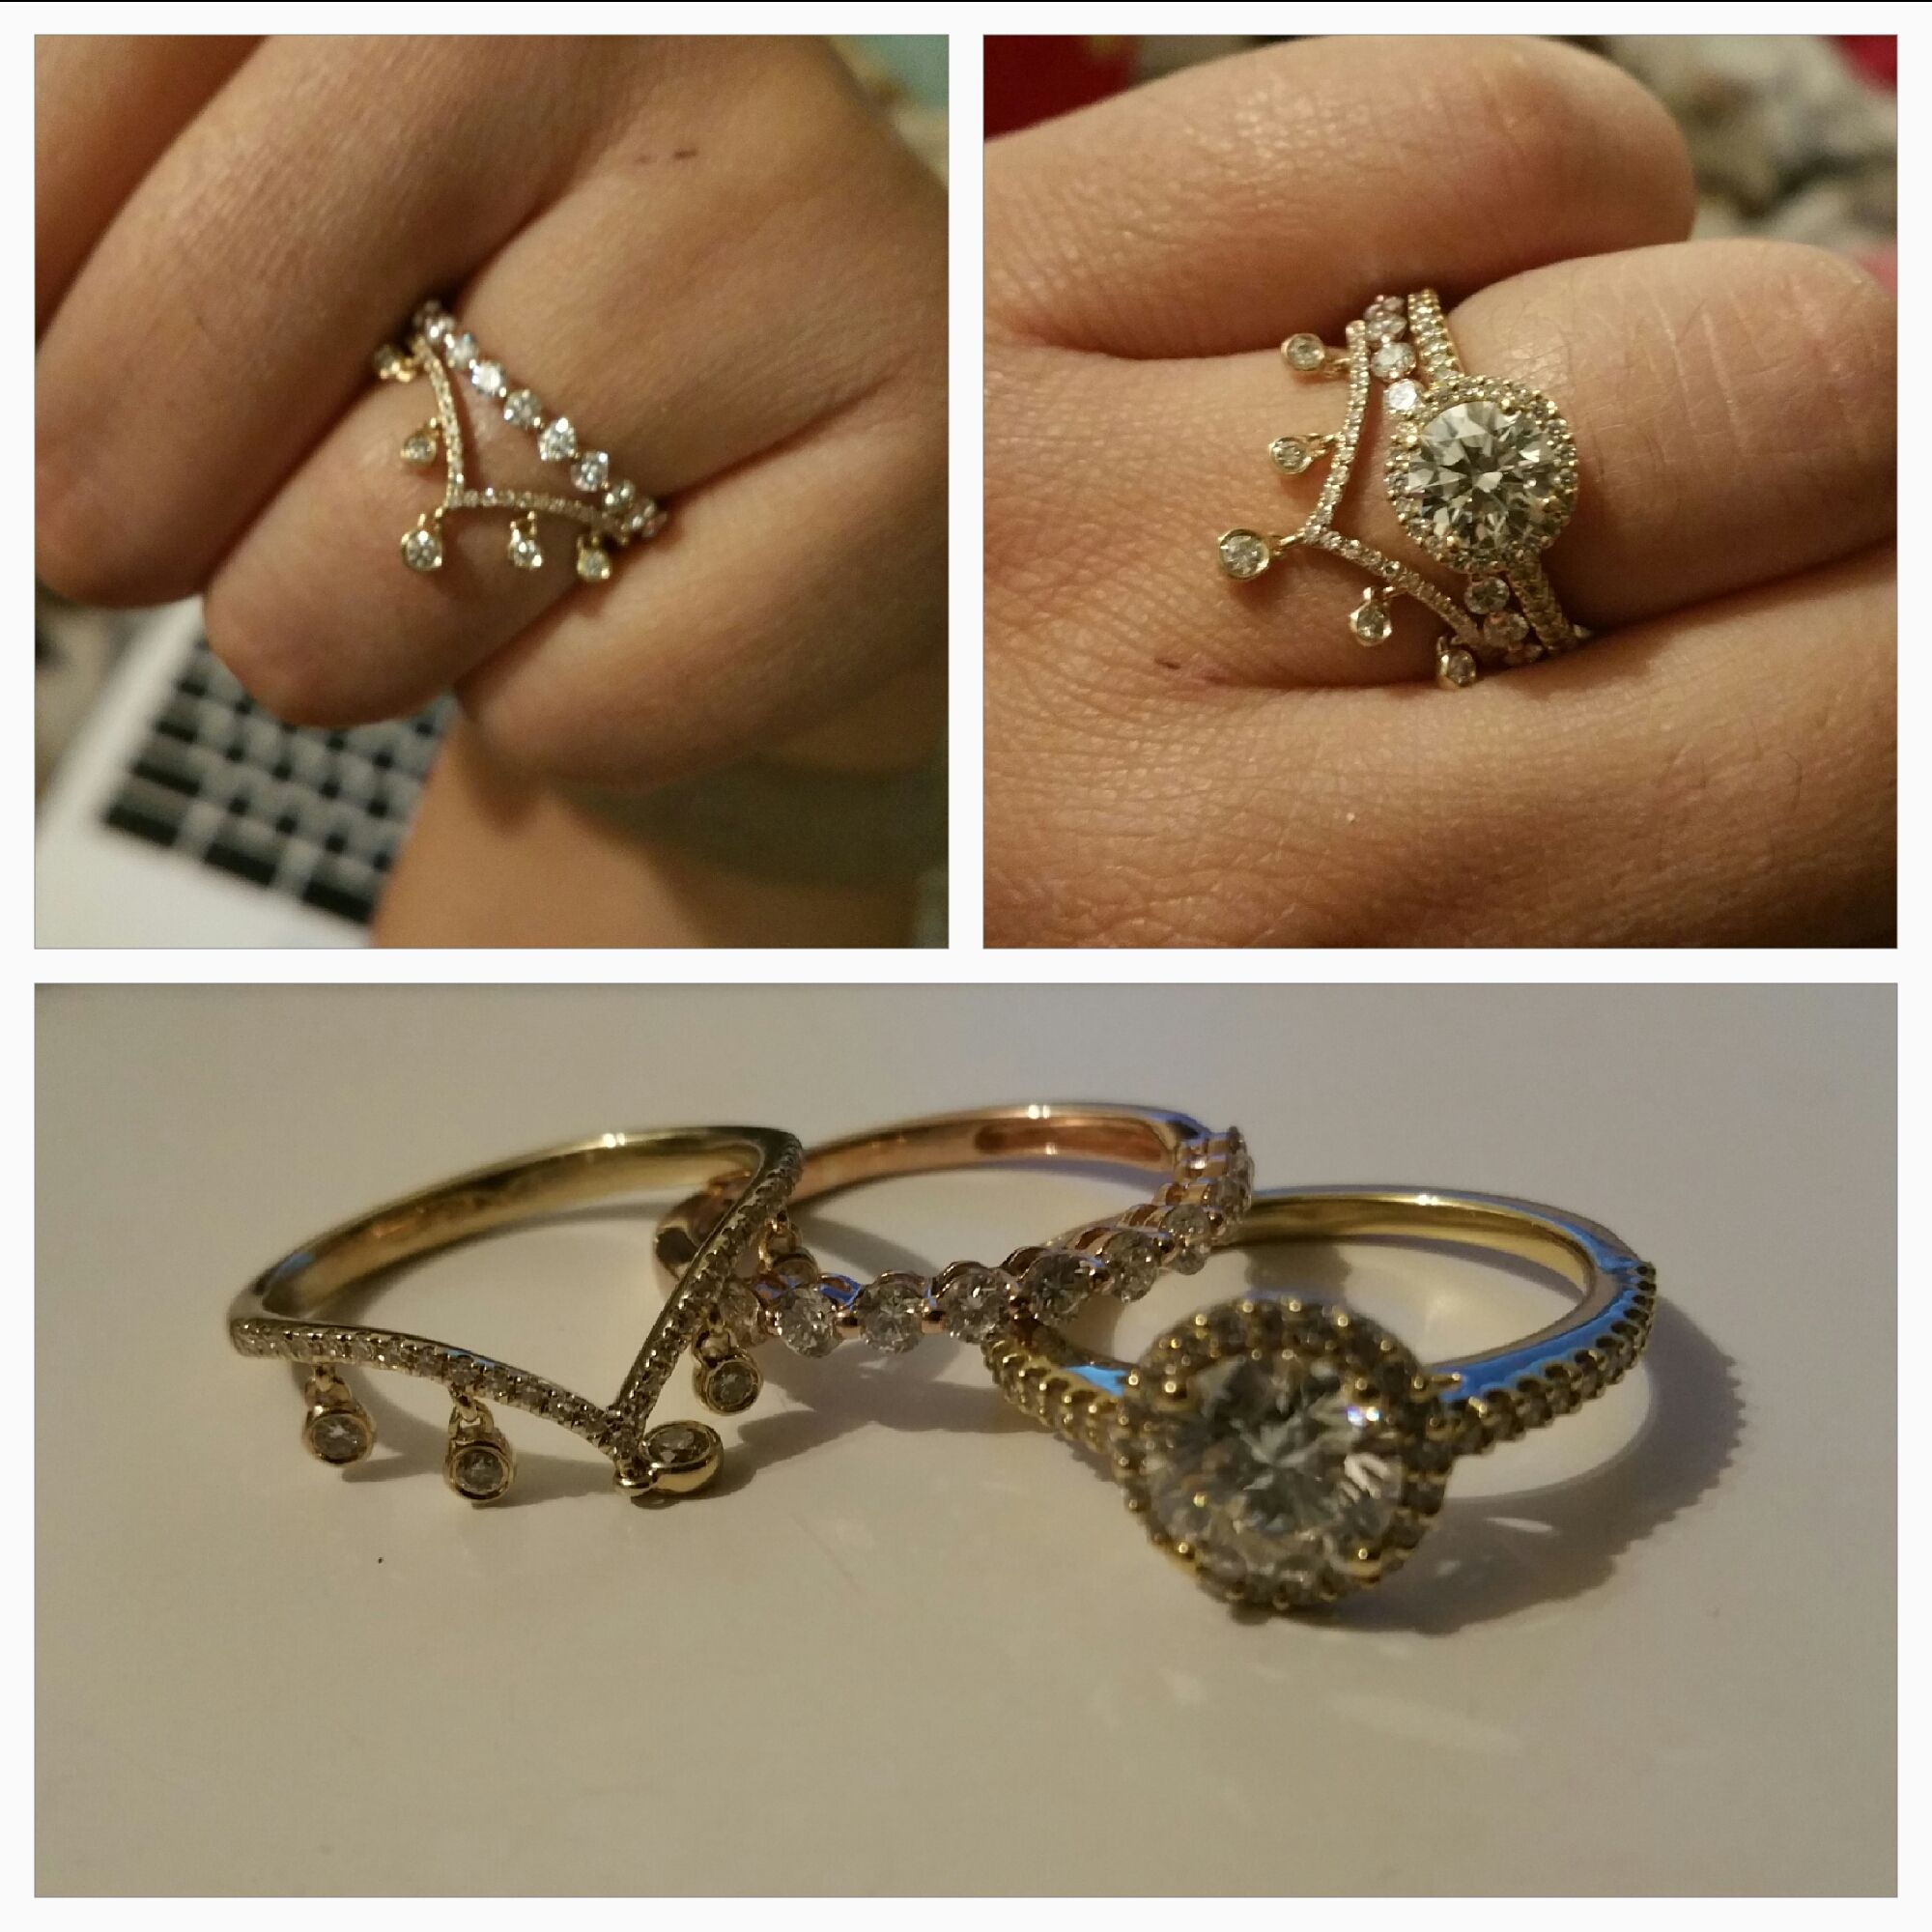 Anyone have a chevron shape wedding band with images